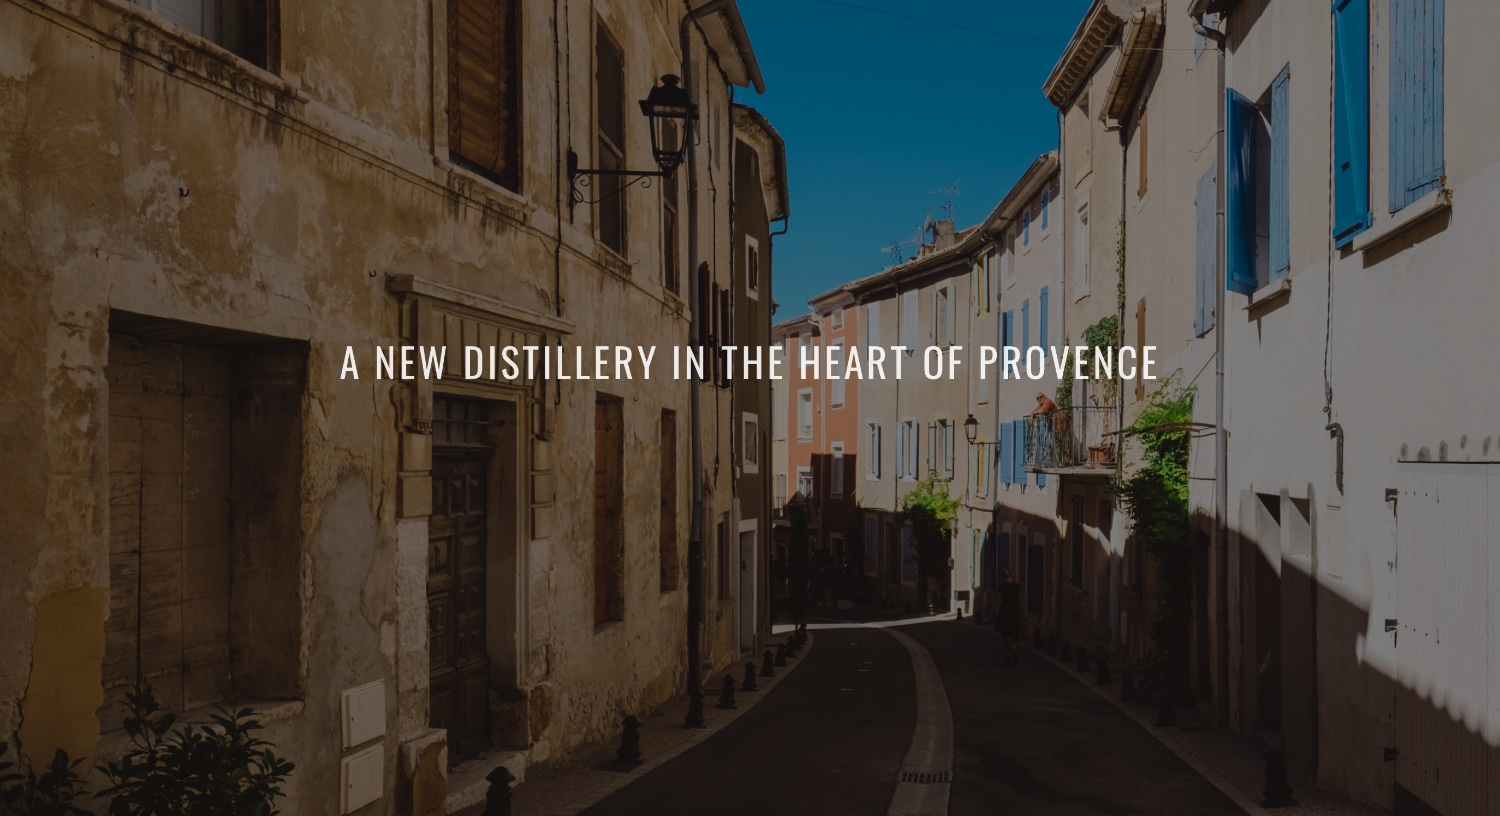 qvtdistillerie.com - Scottish & Norwegian couple producing gin (and vodka) in the heart of the Provence.Features: Absolute stunning imagery to really draw in the visitor. Great storytelling and amazing product. Perfect example of how to showcase your product the world.